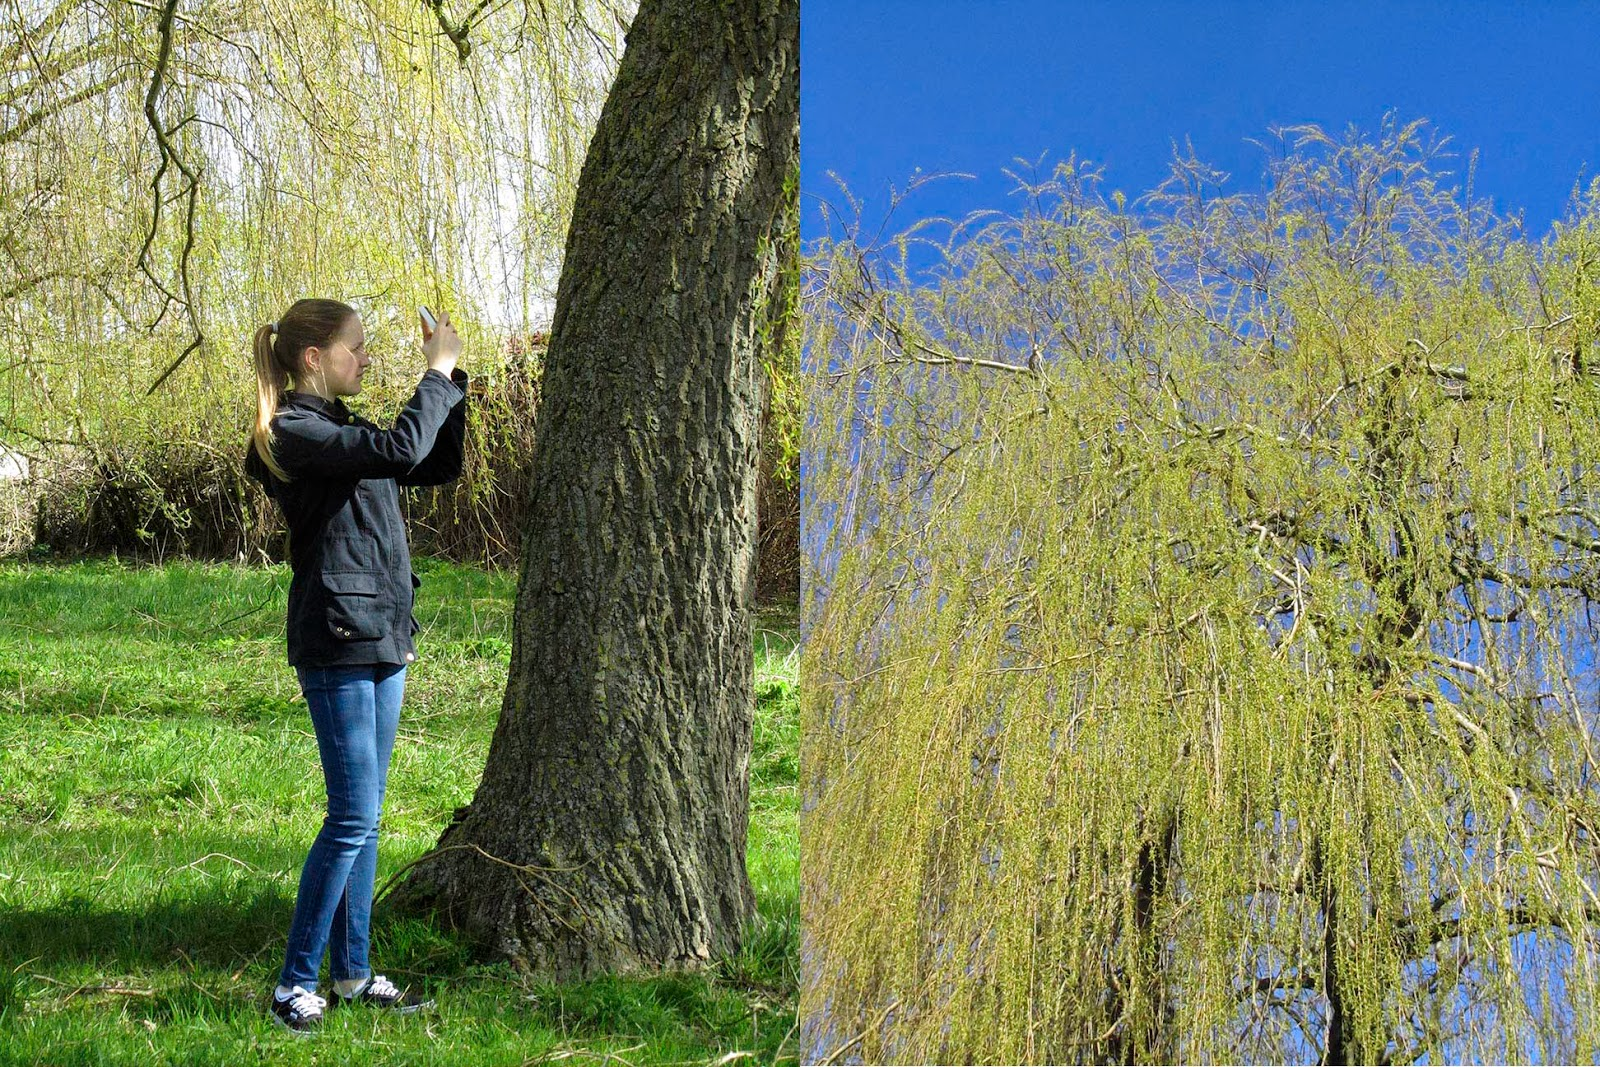 my niece Emily taking picture of this yellow tree